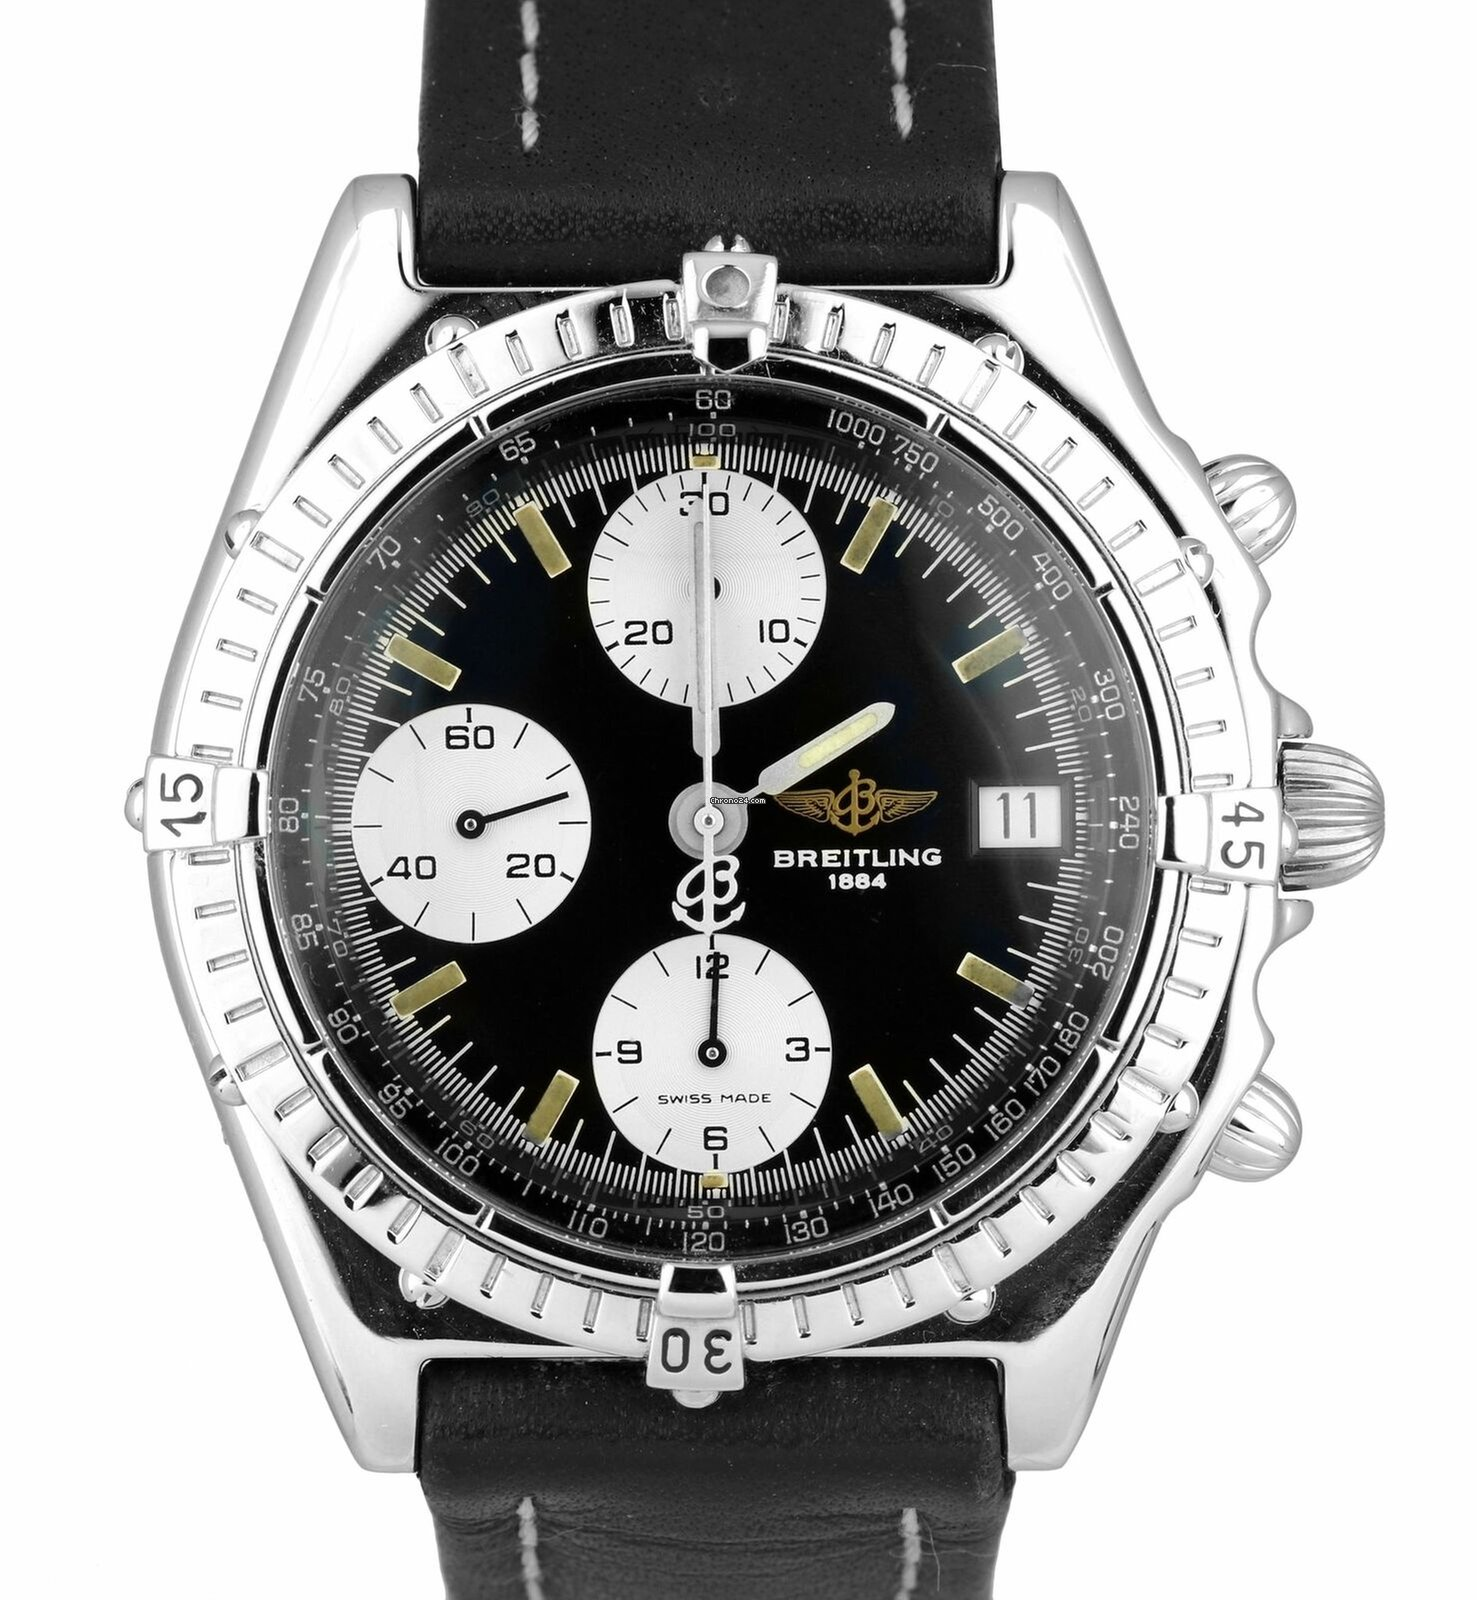 Breitling Chronomat 40mm Chronograph Black Patina Stainless For 1 994 From A Trusted Er On Chrono24